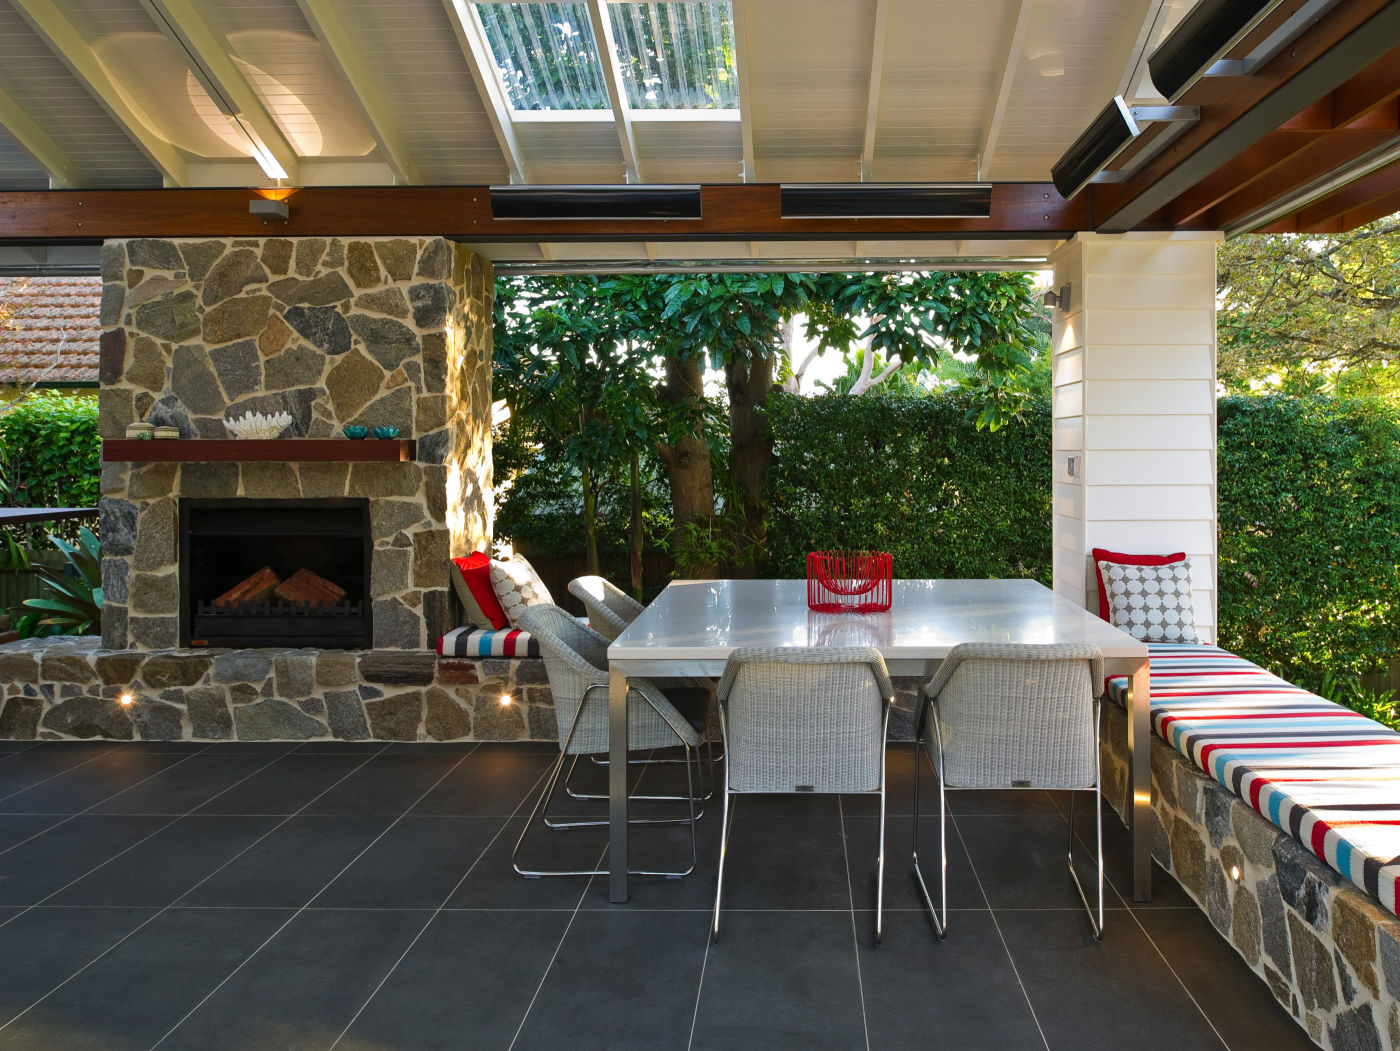 A stone fireplace and walls using Tilpa wall claddings and some furniture Exterior barbeque place